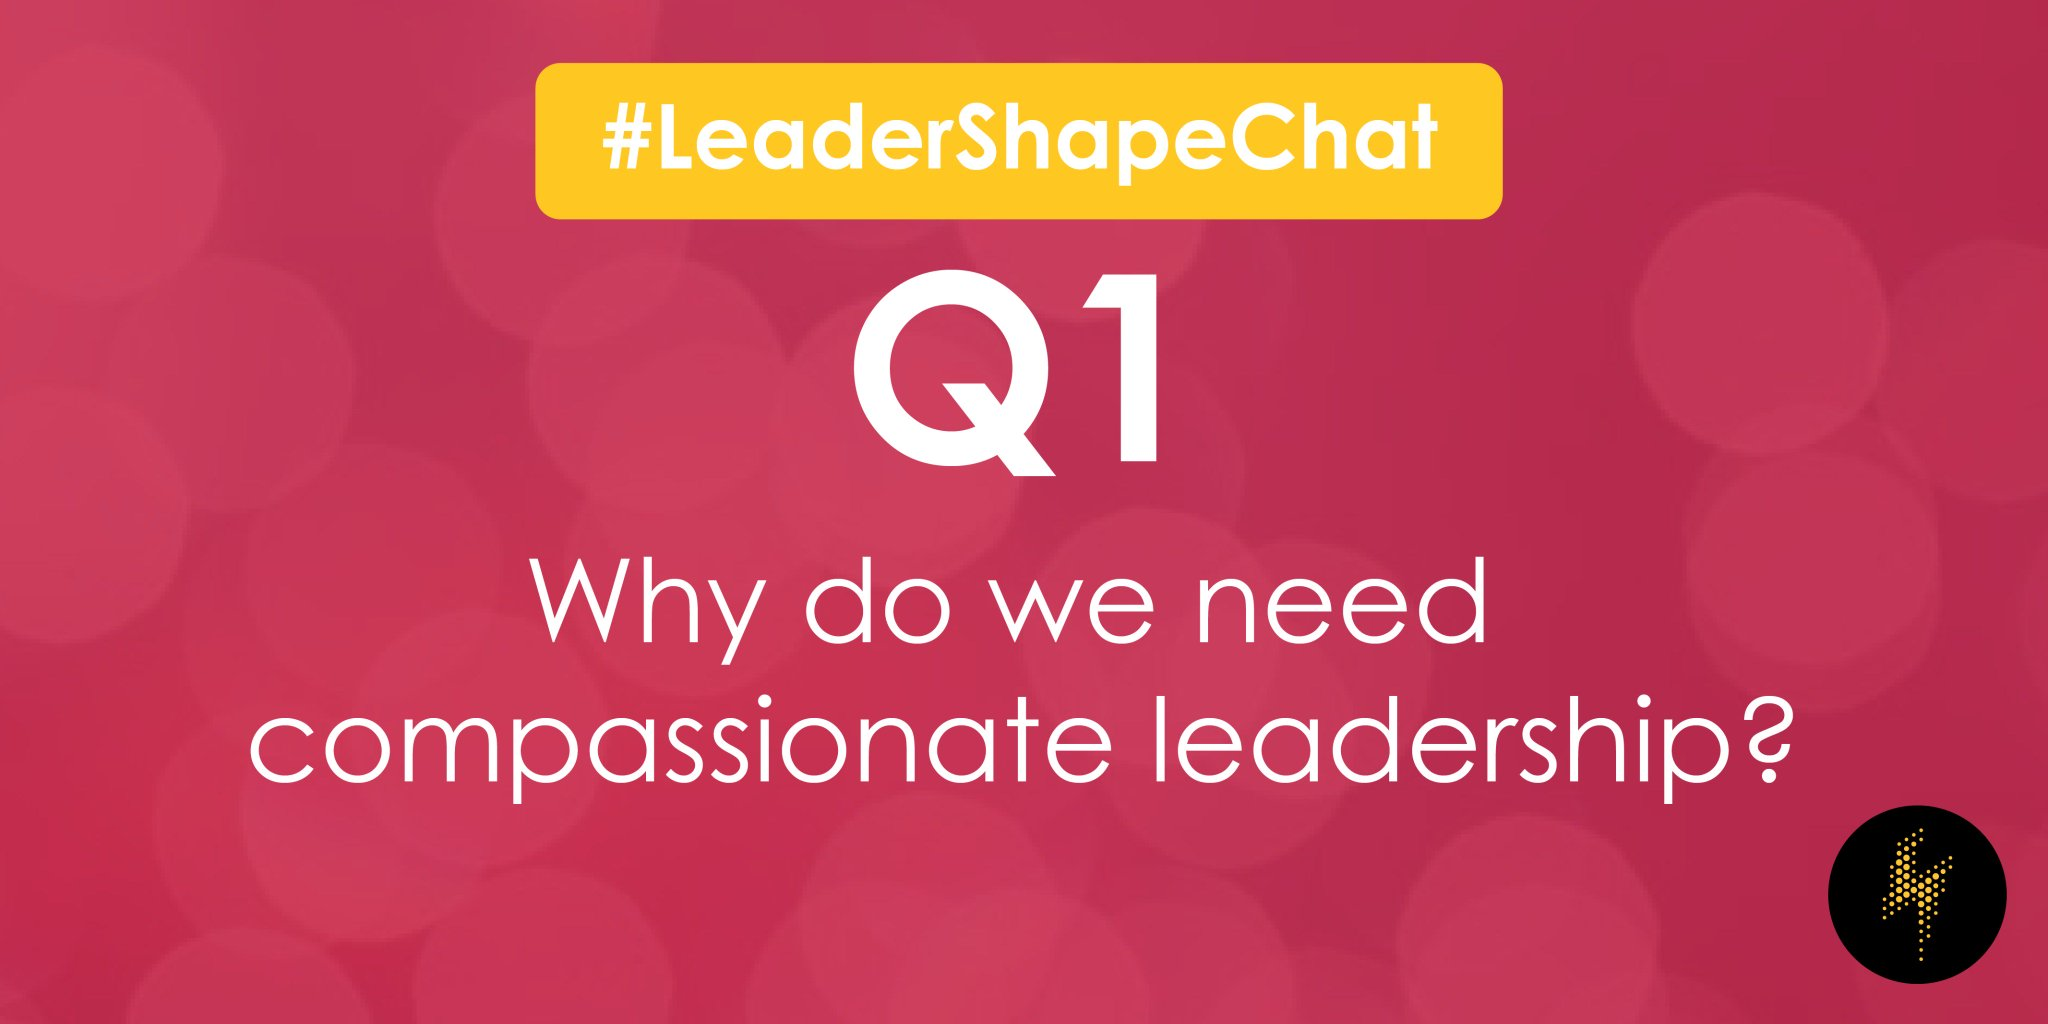 Q1: Why do we need compassionate leadership? #LeaderShapeChat https://t.co/fOhT3LEcHN